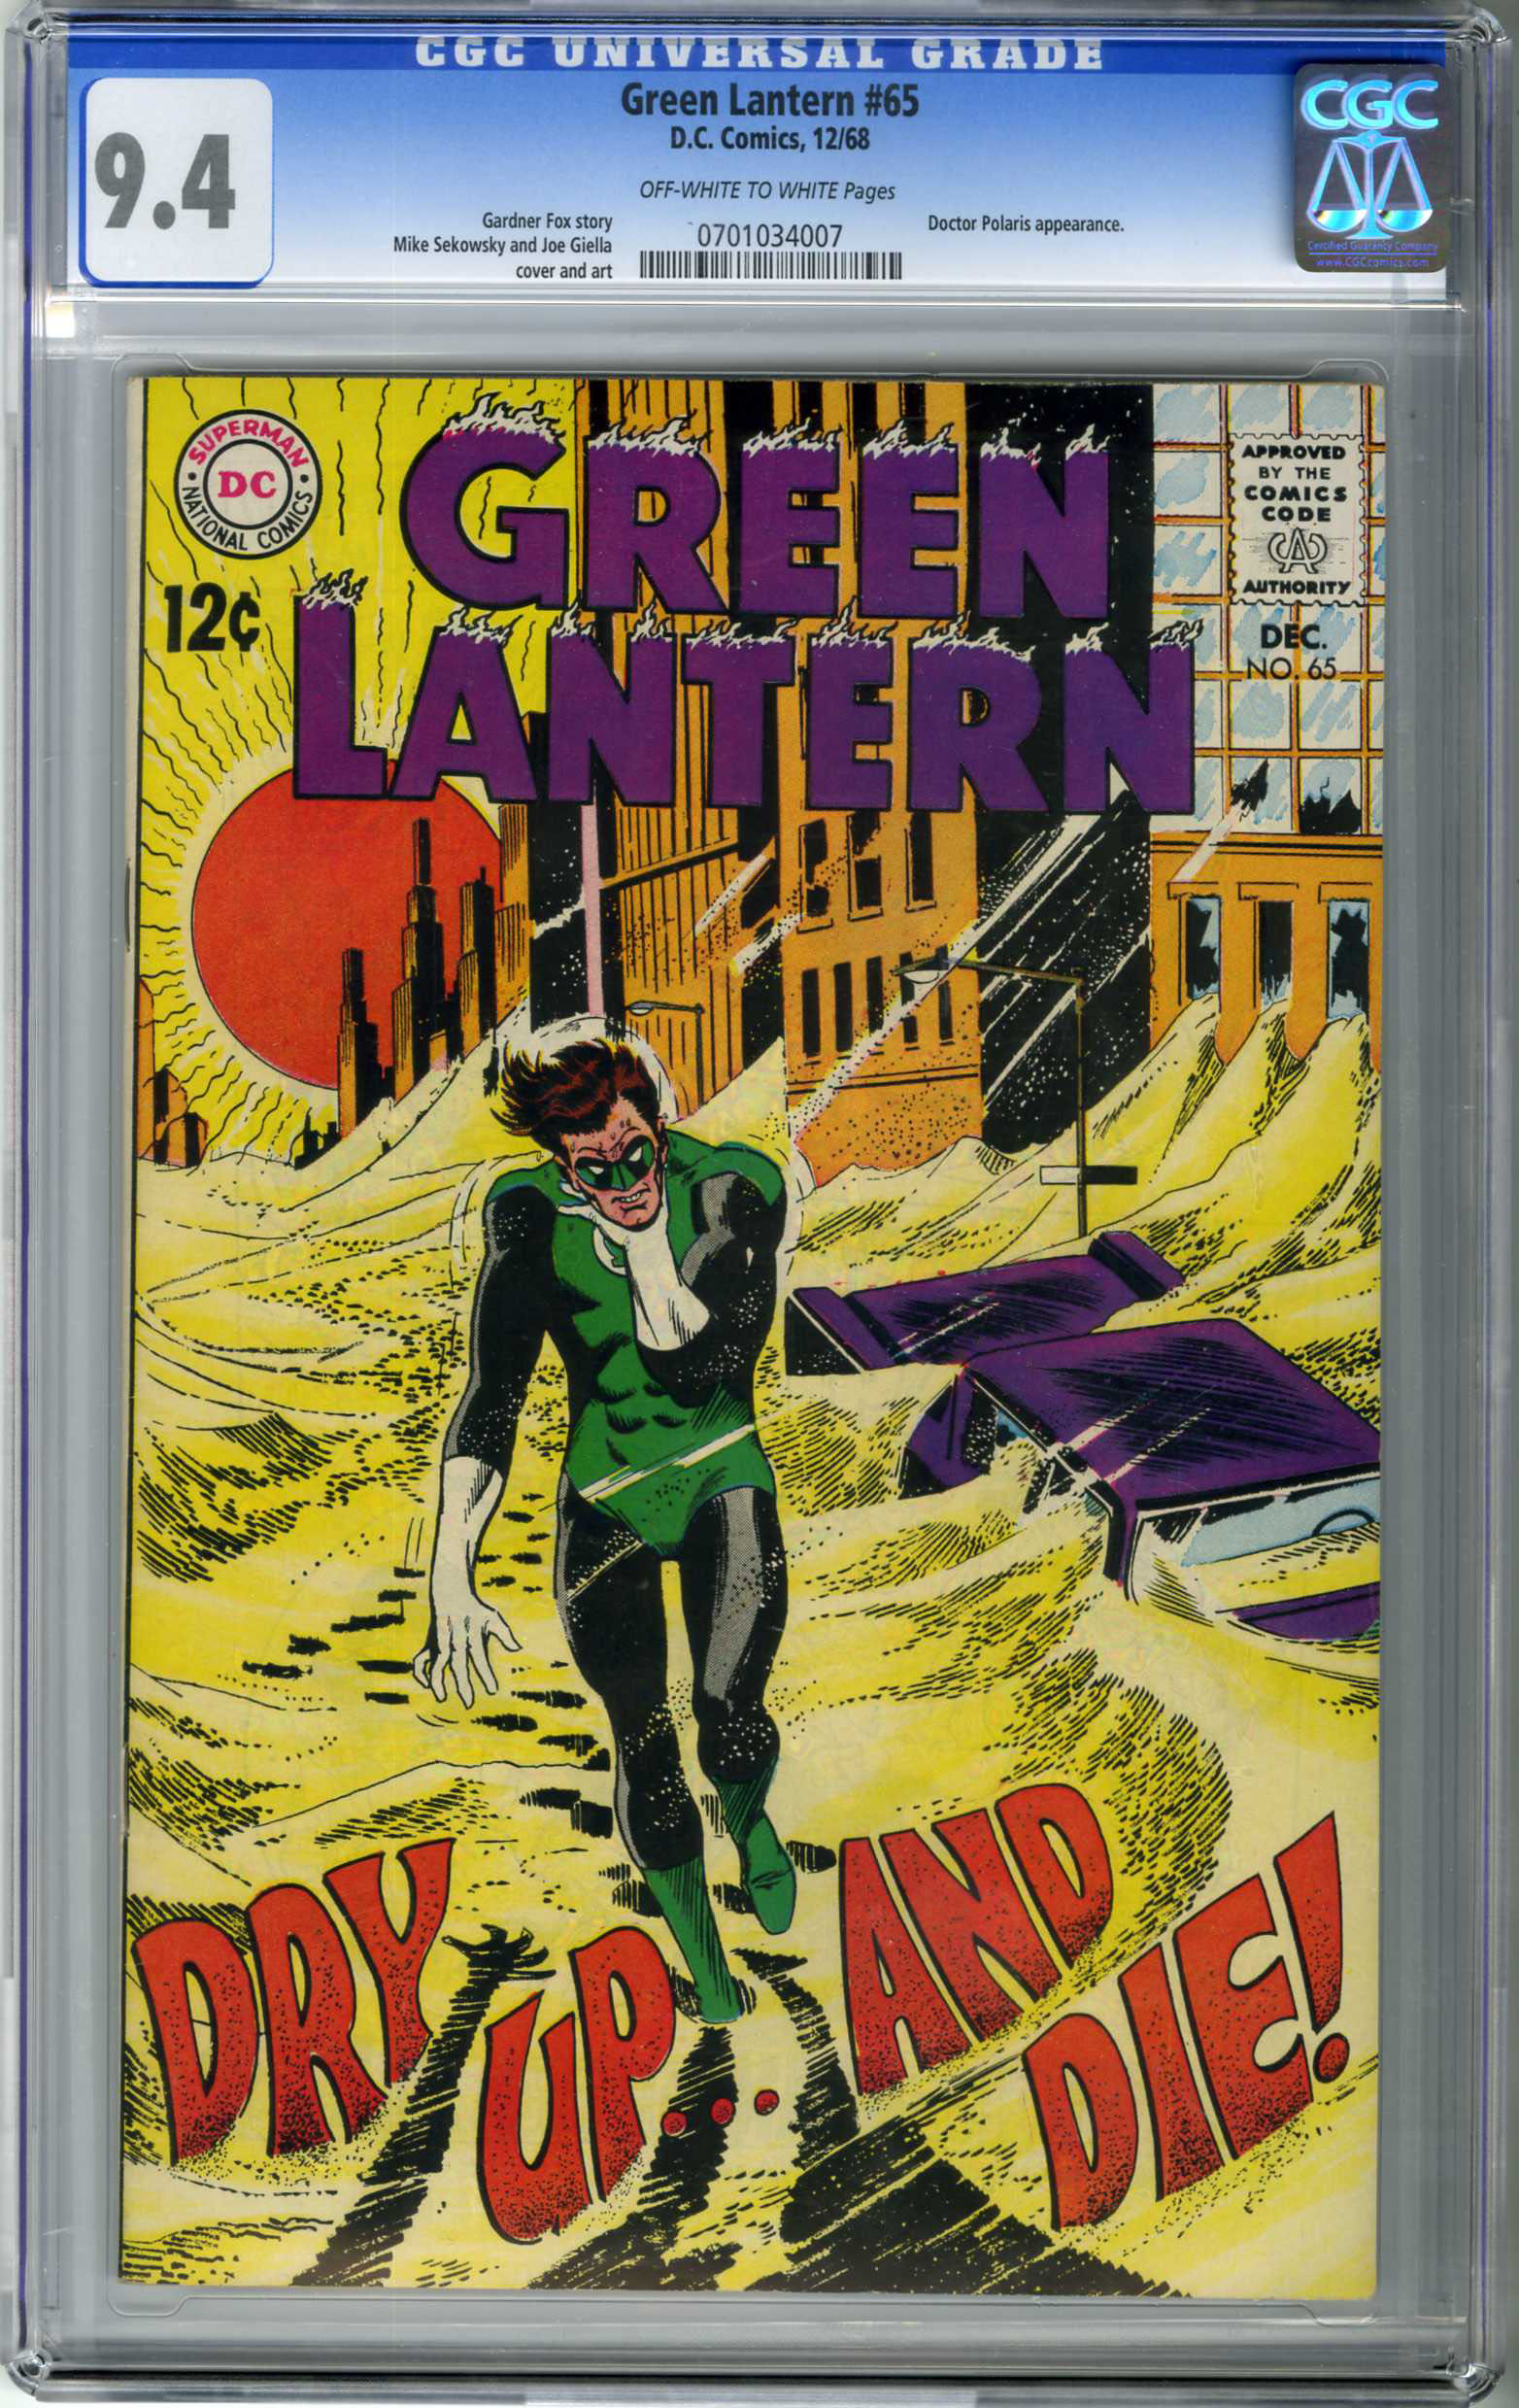 GREEN LANTERN #65 (1968) CGC NM 9.4 OWW Pages SEKOWSKY COVER / DR. POLARIS APPEARANCE